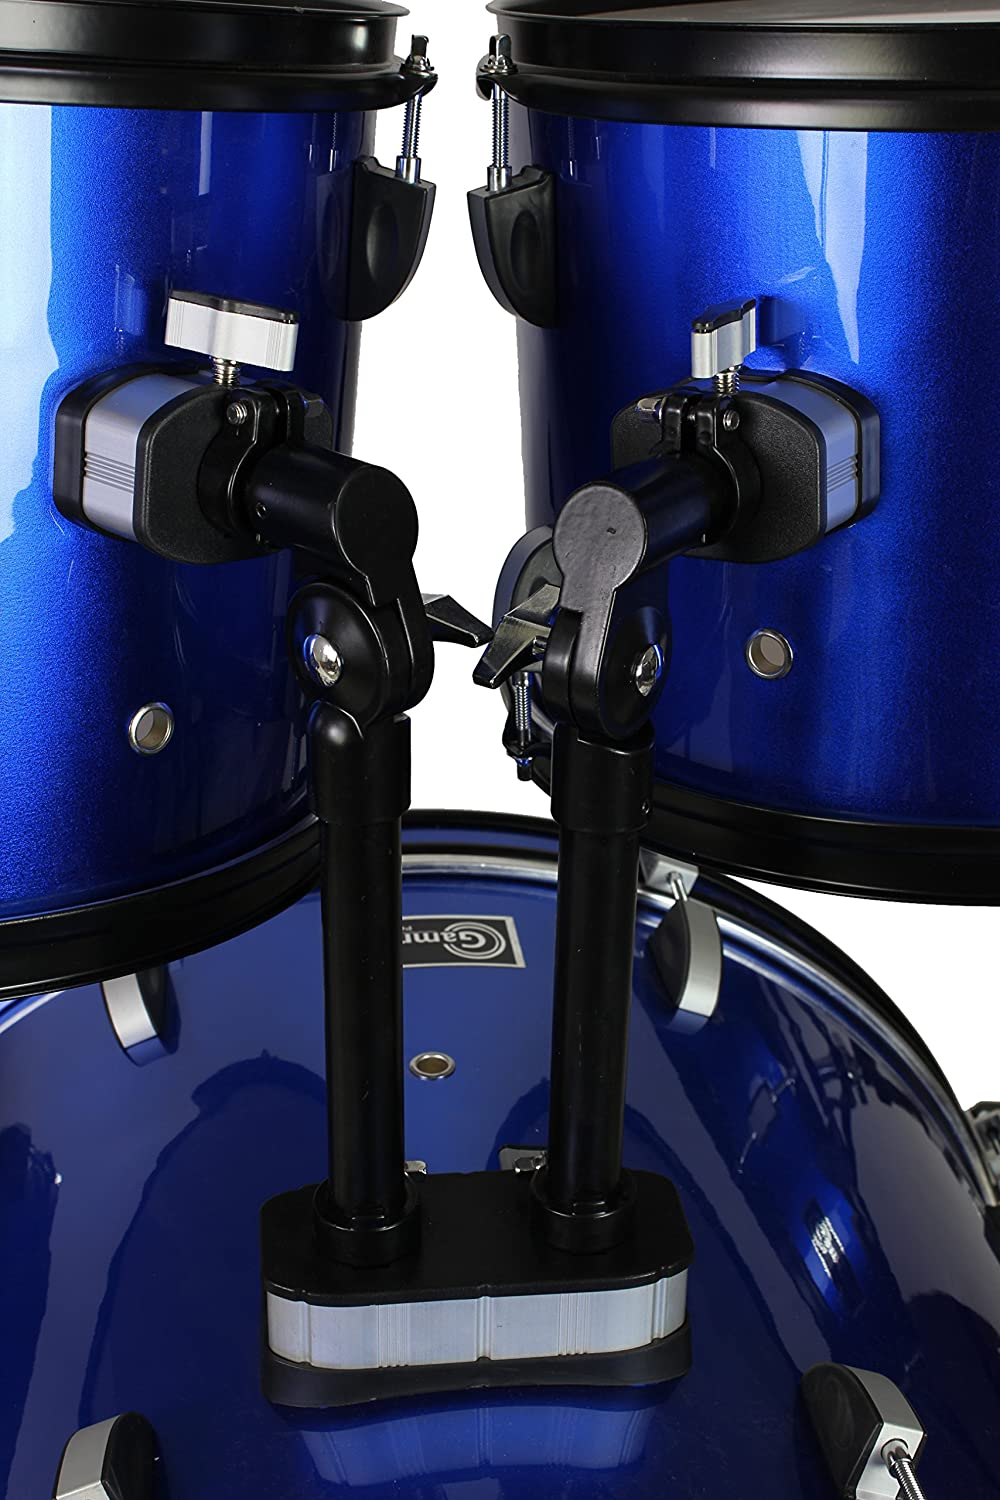 Amazon.com Drum Set Full Size Adult 5-piece Complete Metallic Blue with Cymbals Stands Stool Sticks Musical Instruments & Amazon.com: Drum Set Full Size Adult 5-piece Complete Metallic ... islam-shia.org